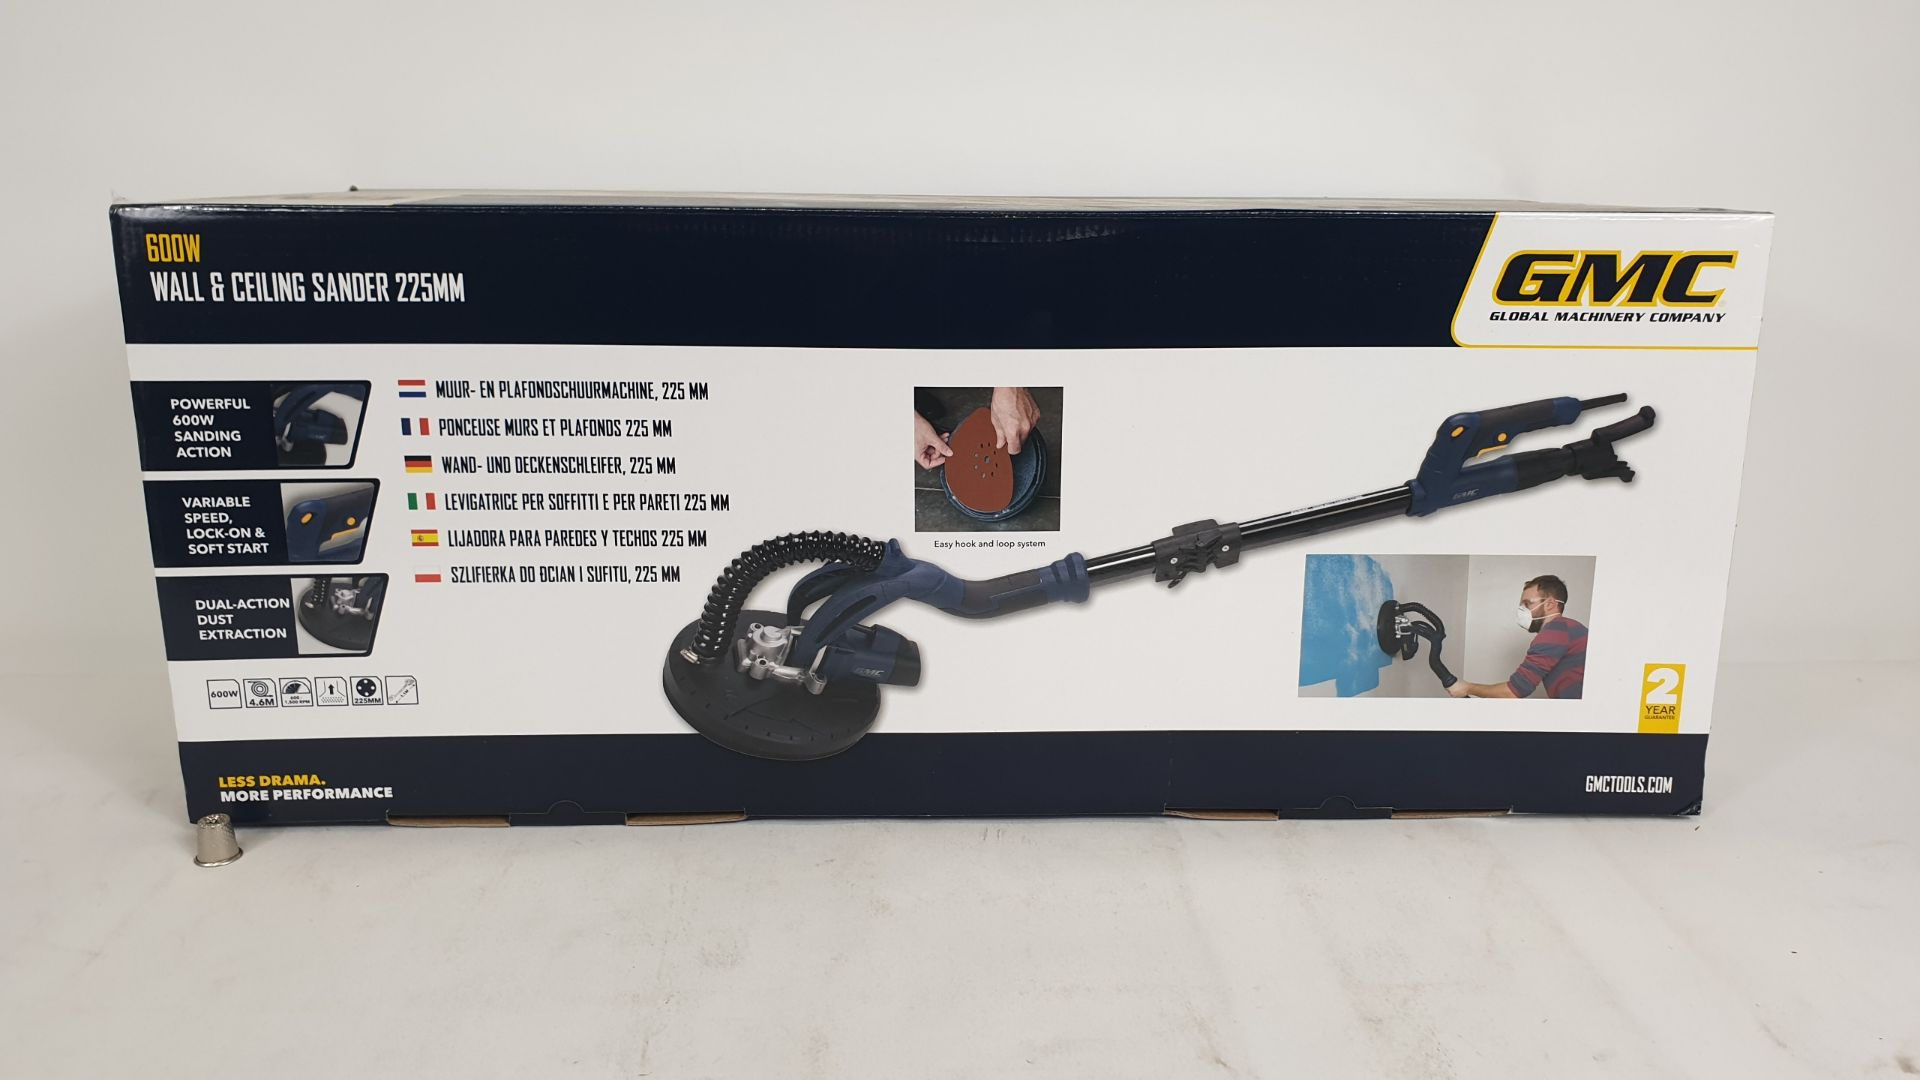 Lot 1557 - (LOT FOR THURSDAY 28TH MAY AUCTION) GMC 600W WALL AND CEILING SANDER 225M (PRODUCT CODE 264803) - (